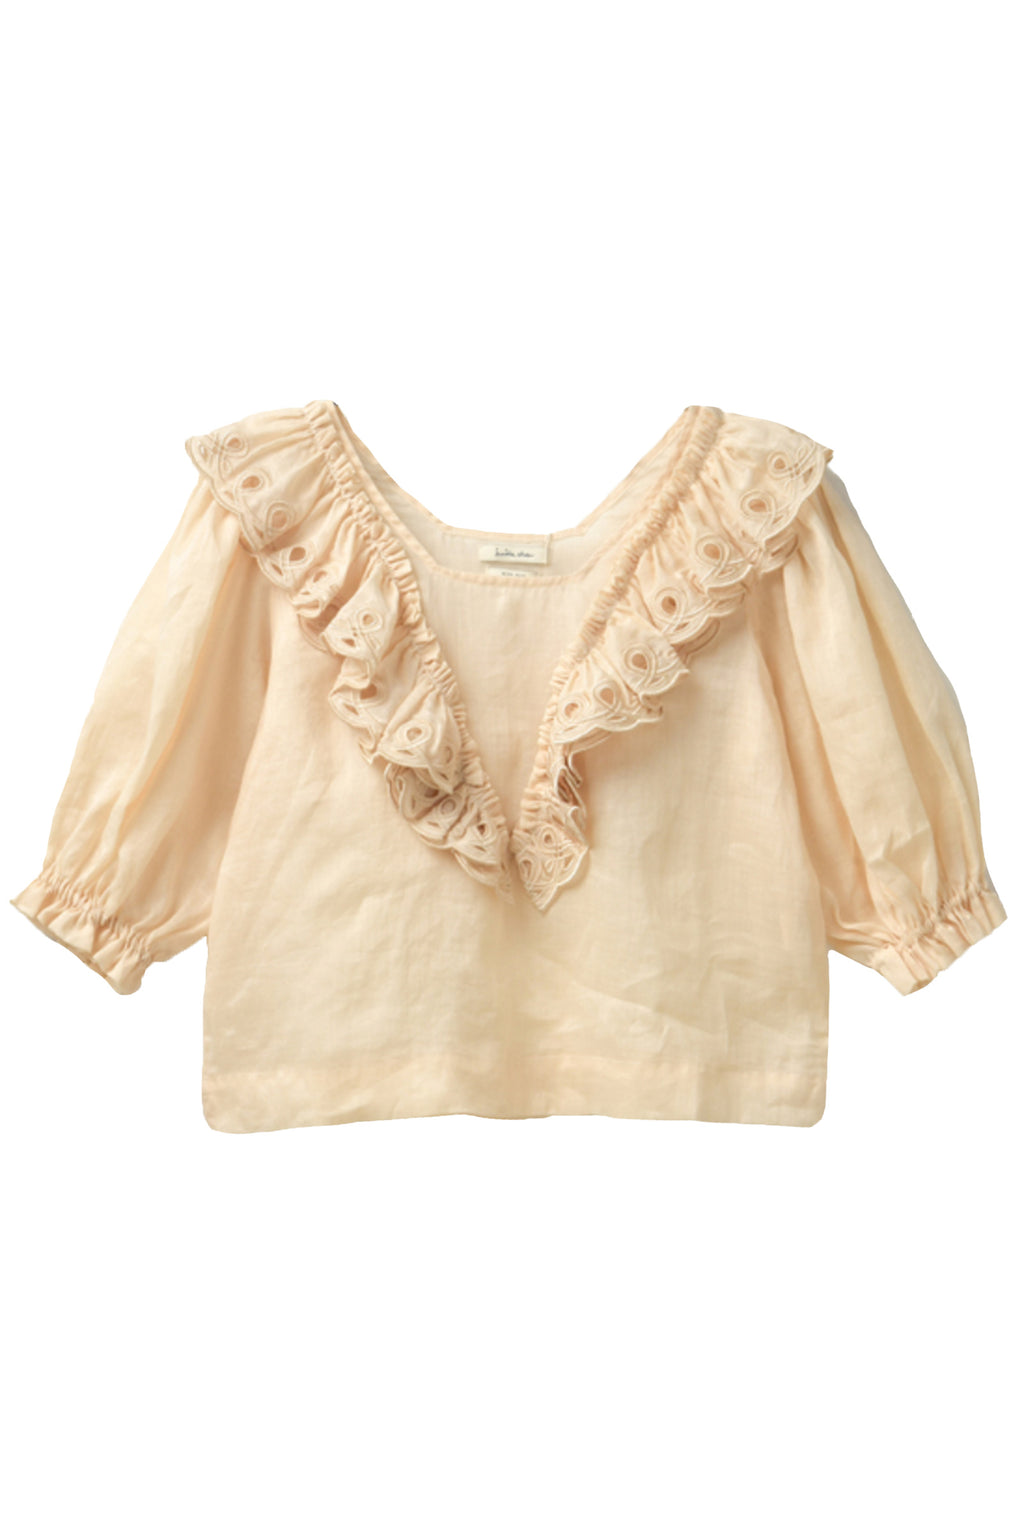 Innika Choo Crop Frill Blouse in Cream Tan